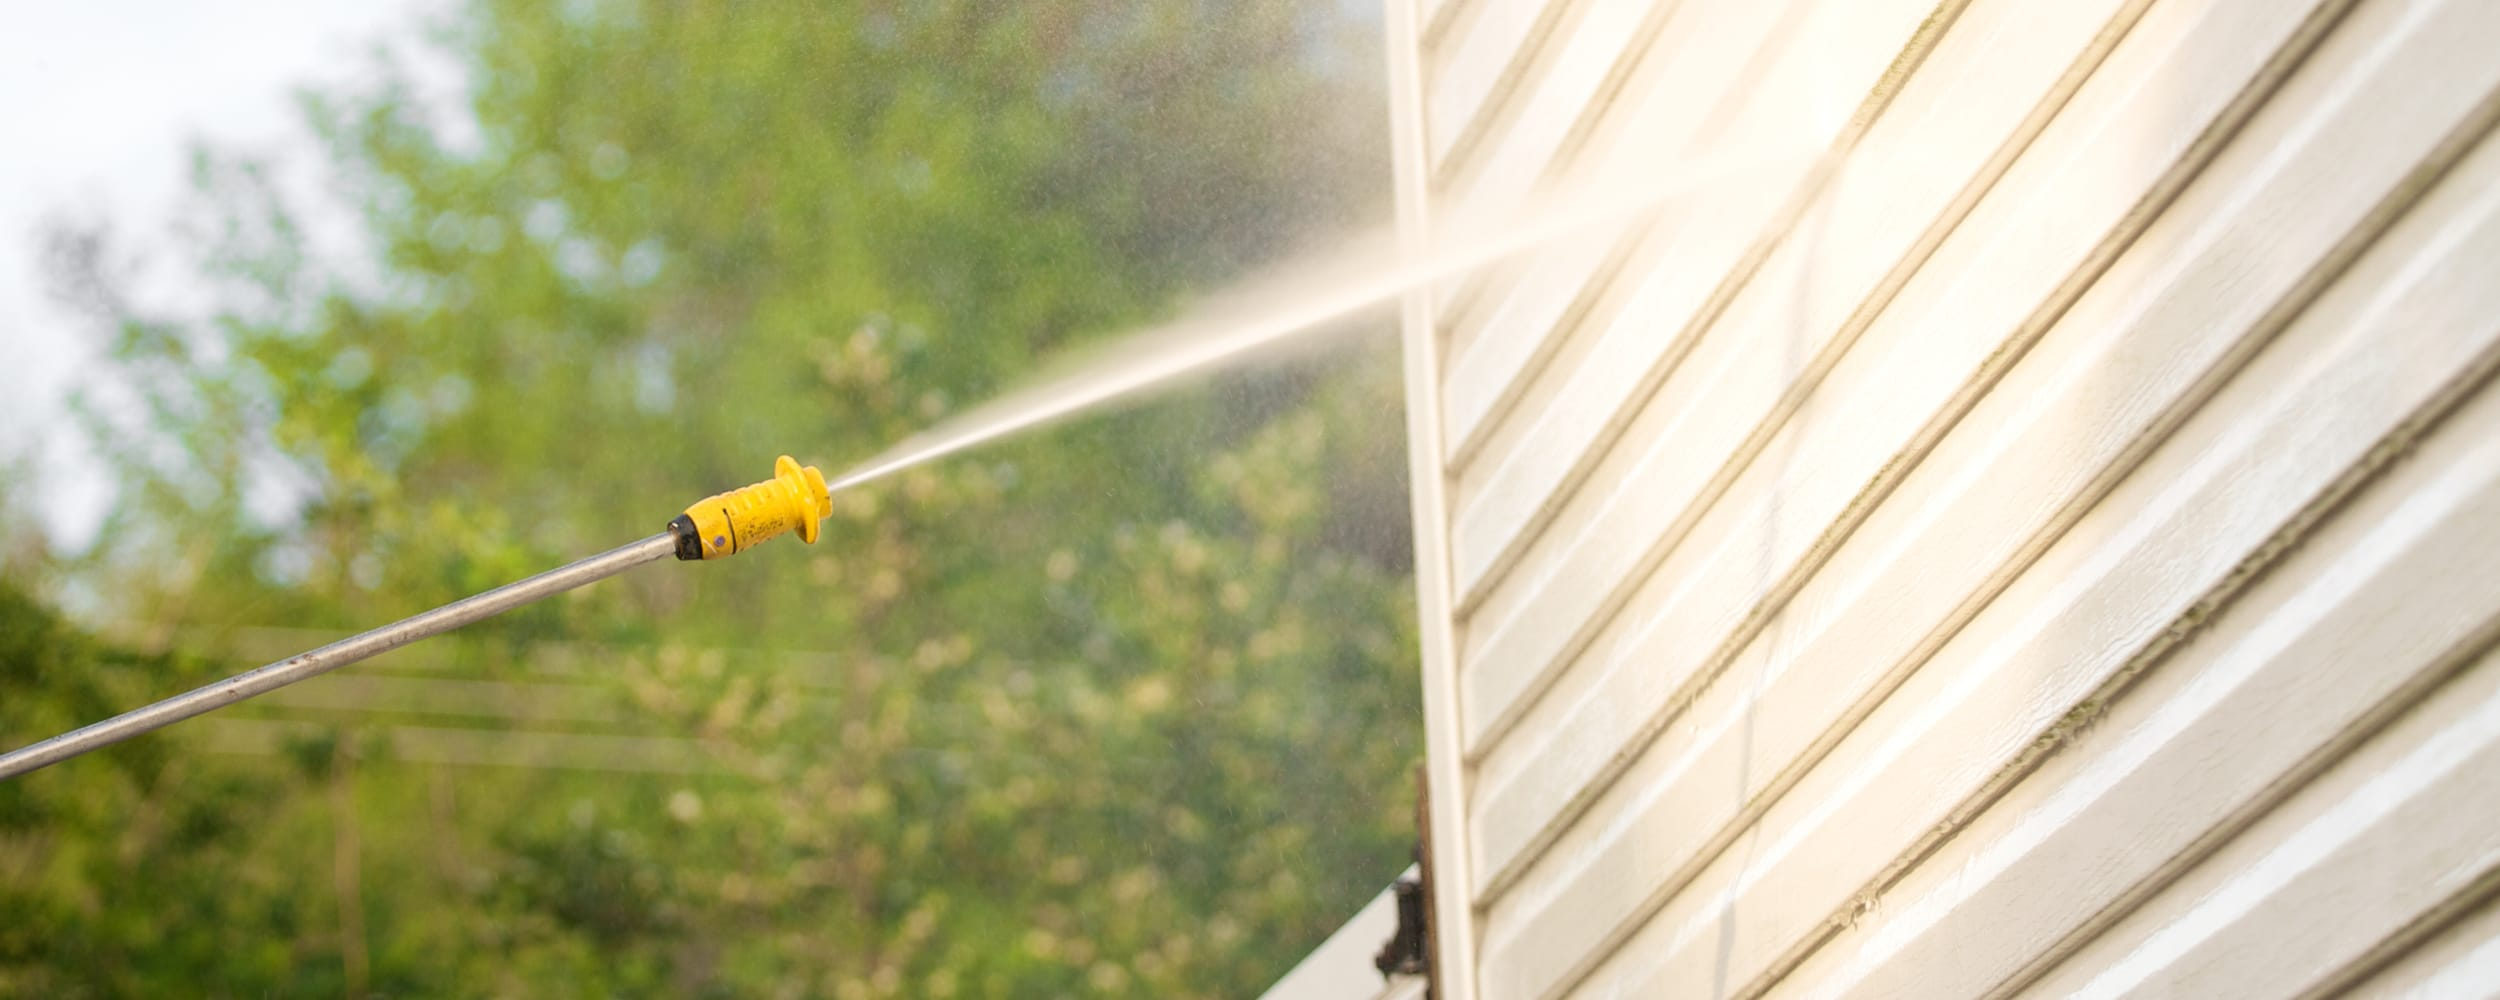 Vinyl_Siding_Cleaning_Maintenance_2500x1000.jpg